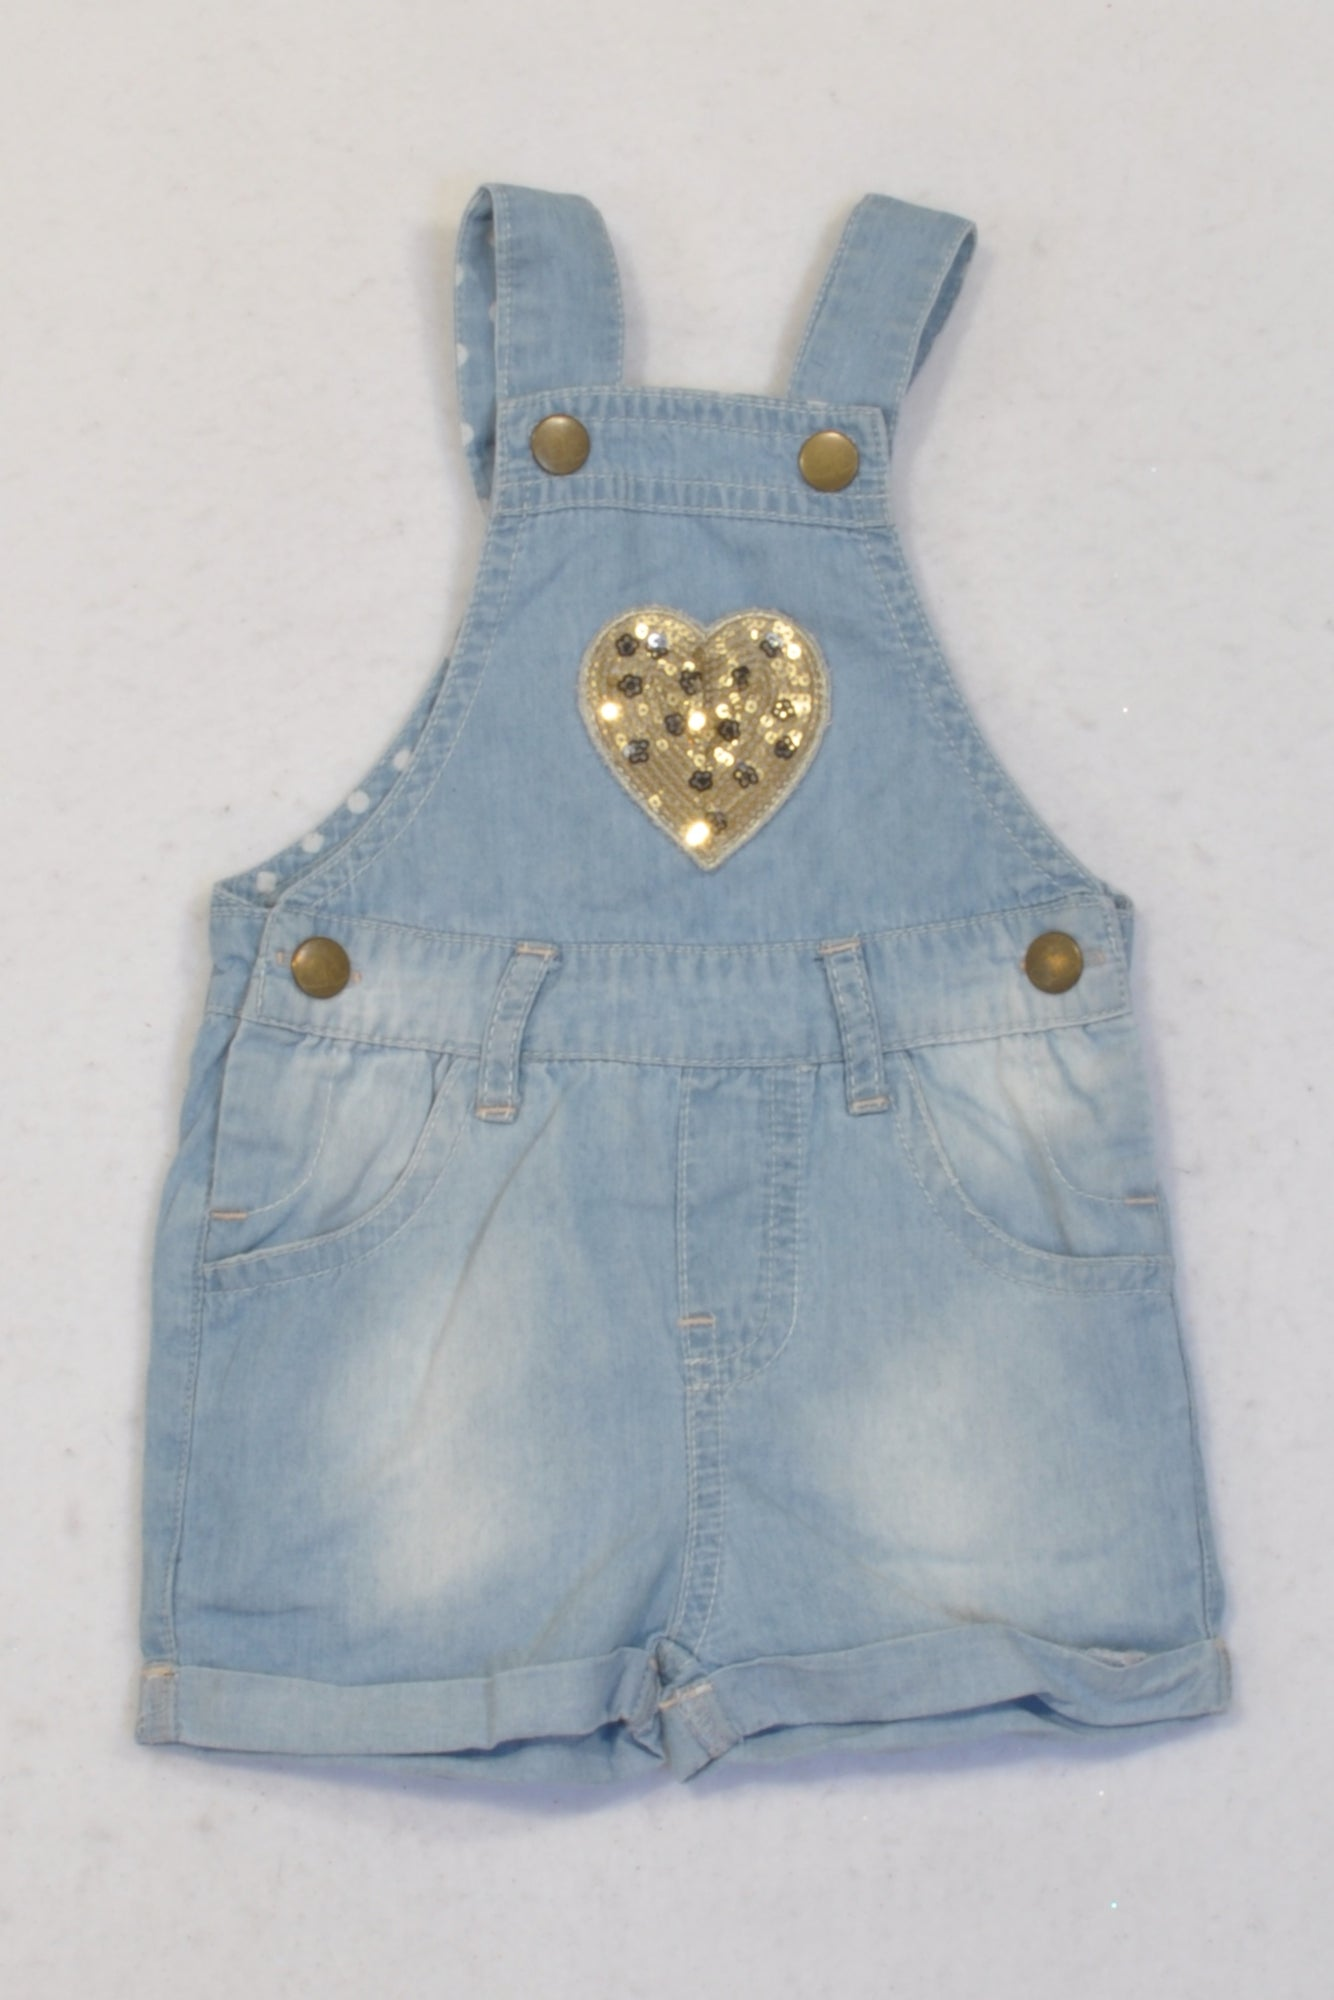 Woolworths Lightweight Denim Sequin Heart Shorts Dungarees Girls 0-3 months